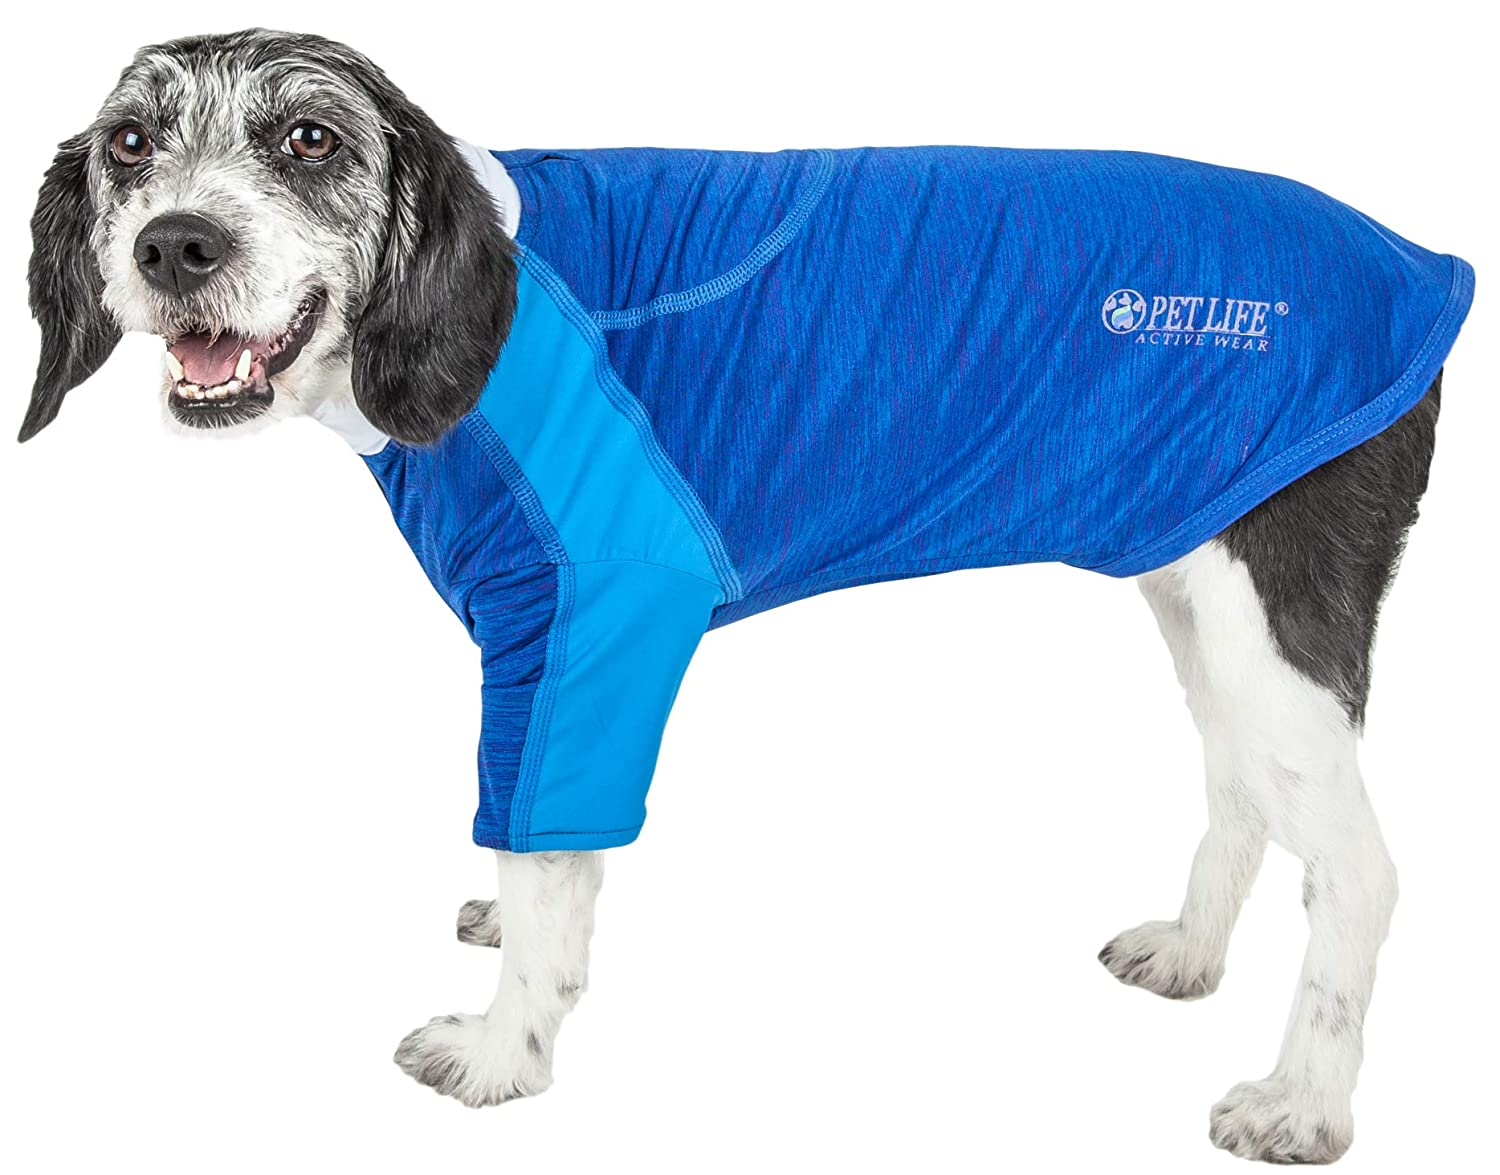 bluee X-small bluee X-small Pet Life 'Chewitt Wagassy' 4-Way Stretch Performance Long Sleeve Dog T-Shirt, X-Small, bluee